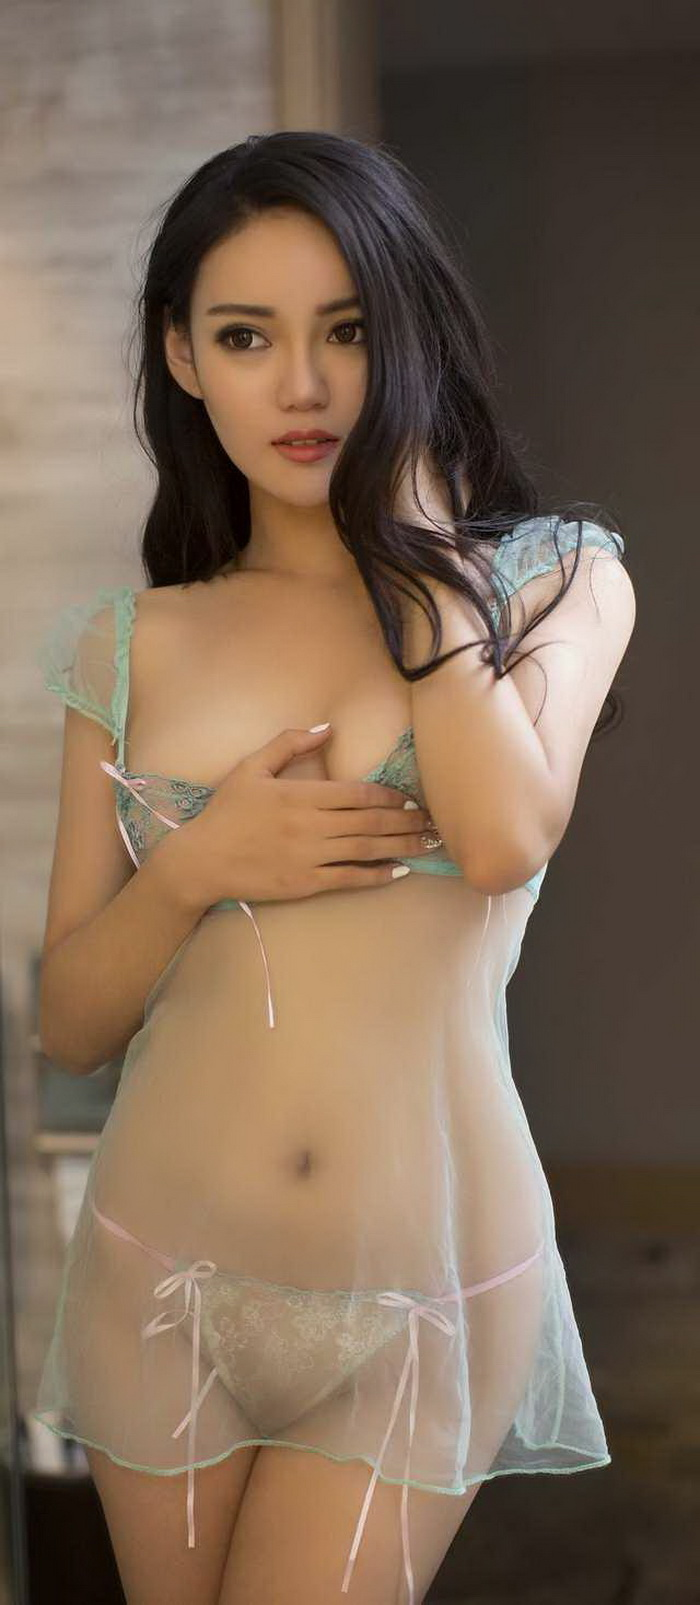 Sexy Hot Asian Girls (50 Photos)